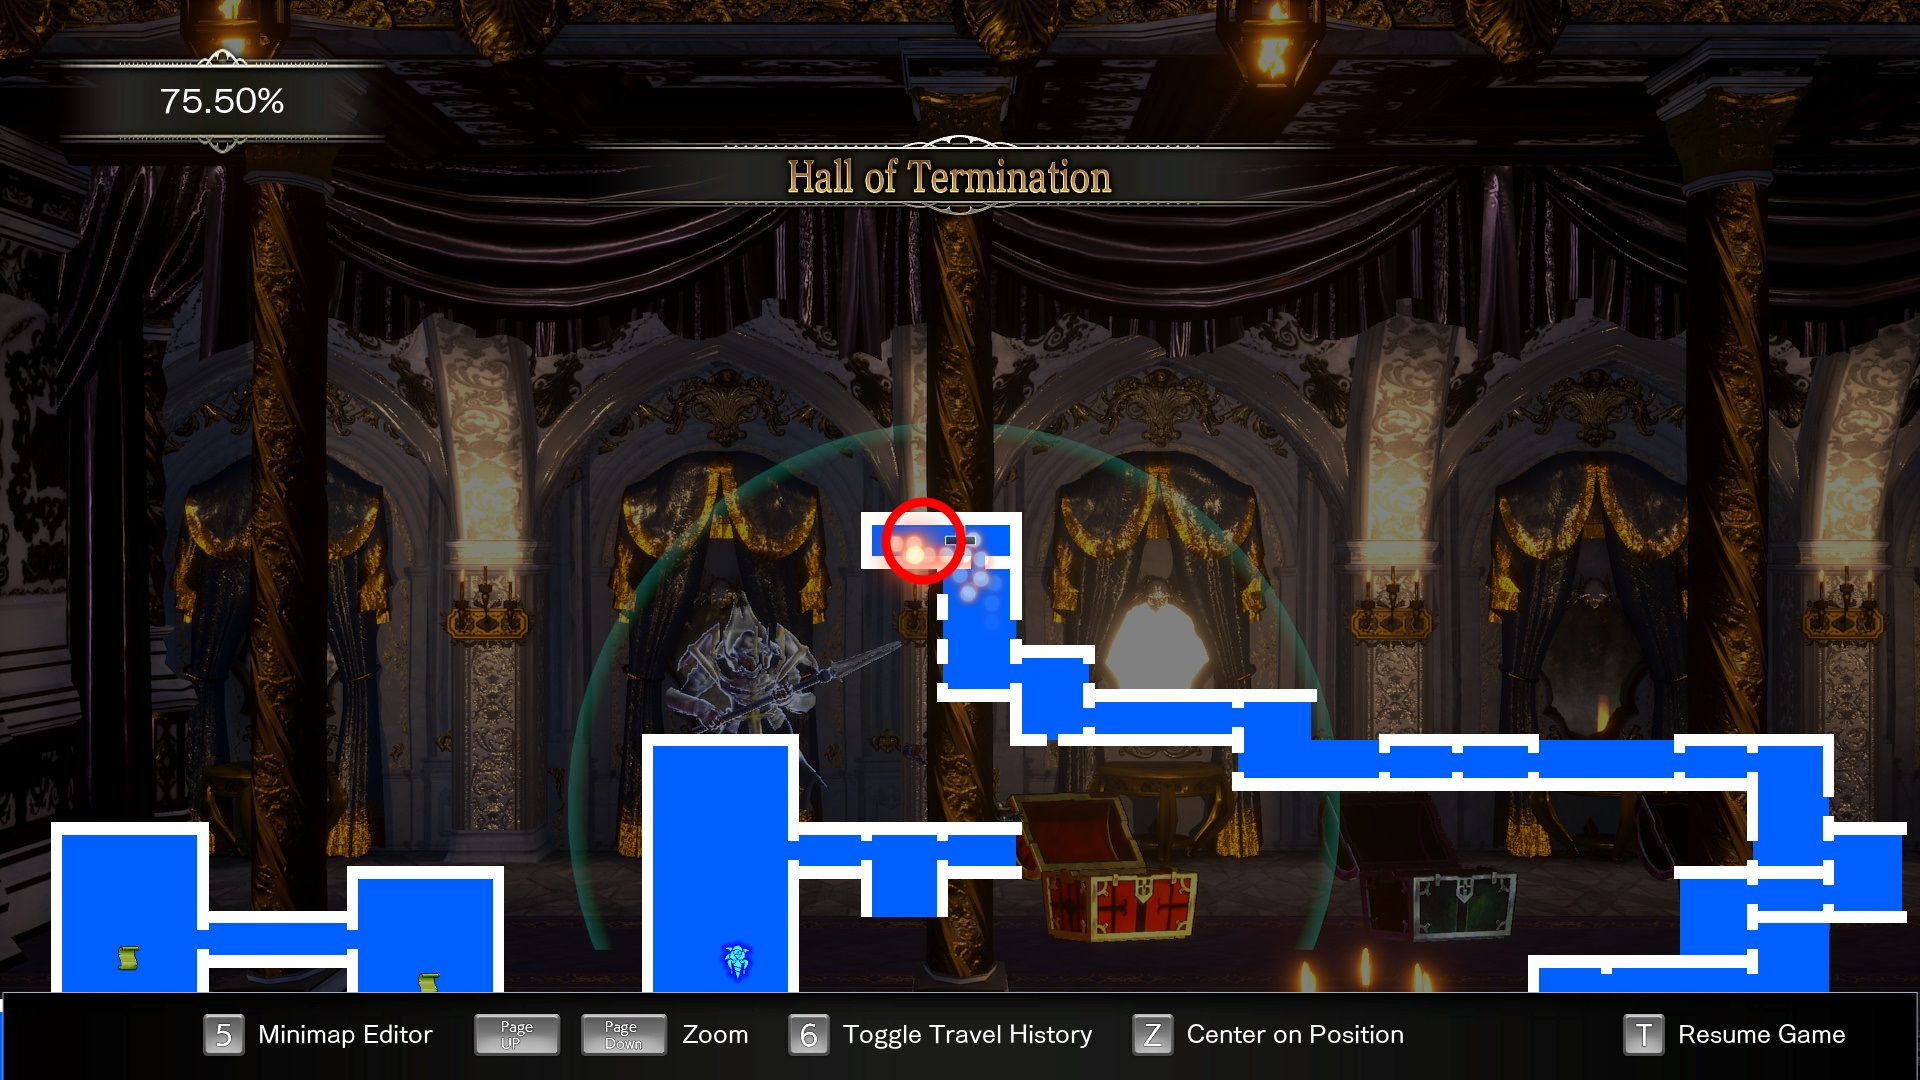 Where to Find Celeste's Key in Bloodstained Ritual of the Night